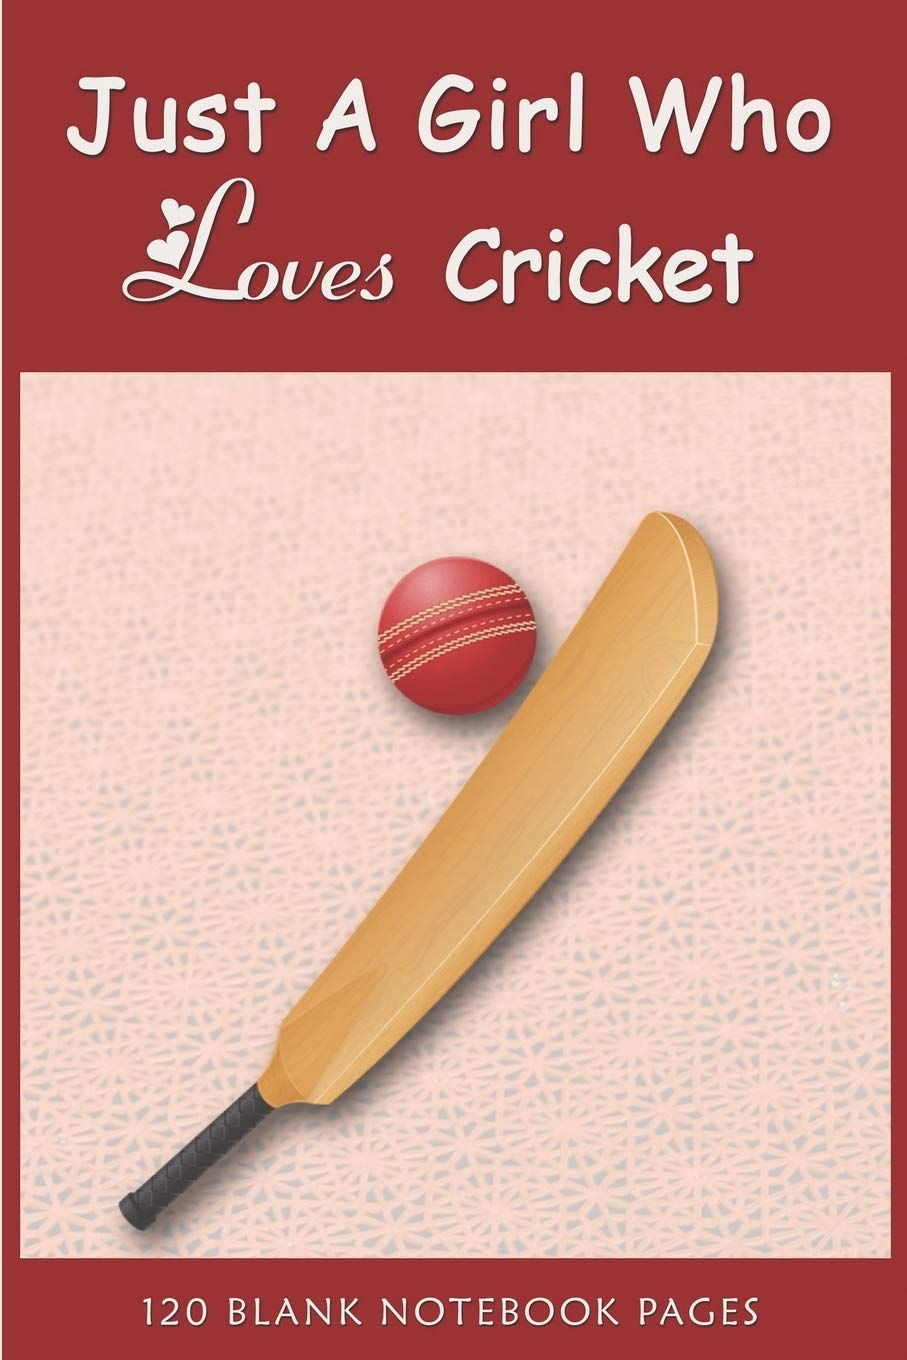 Buy Just A Girl Who Loves Cricket Gift For Cricket Lovers Cricket Lovers Journal Notebook Diary Notepad Journal For Girls Boys Men Women Funny Gift Thanksgiving Christmas